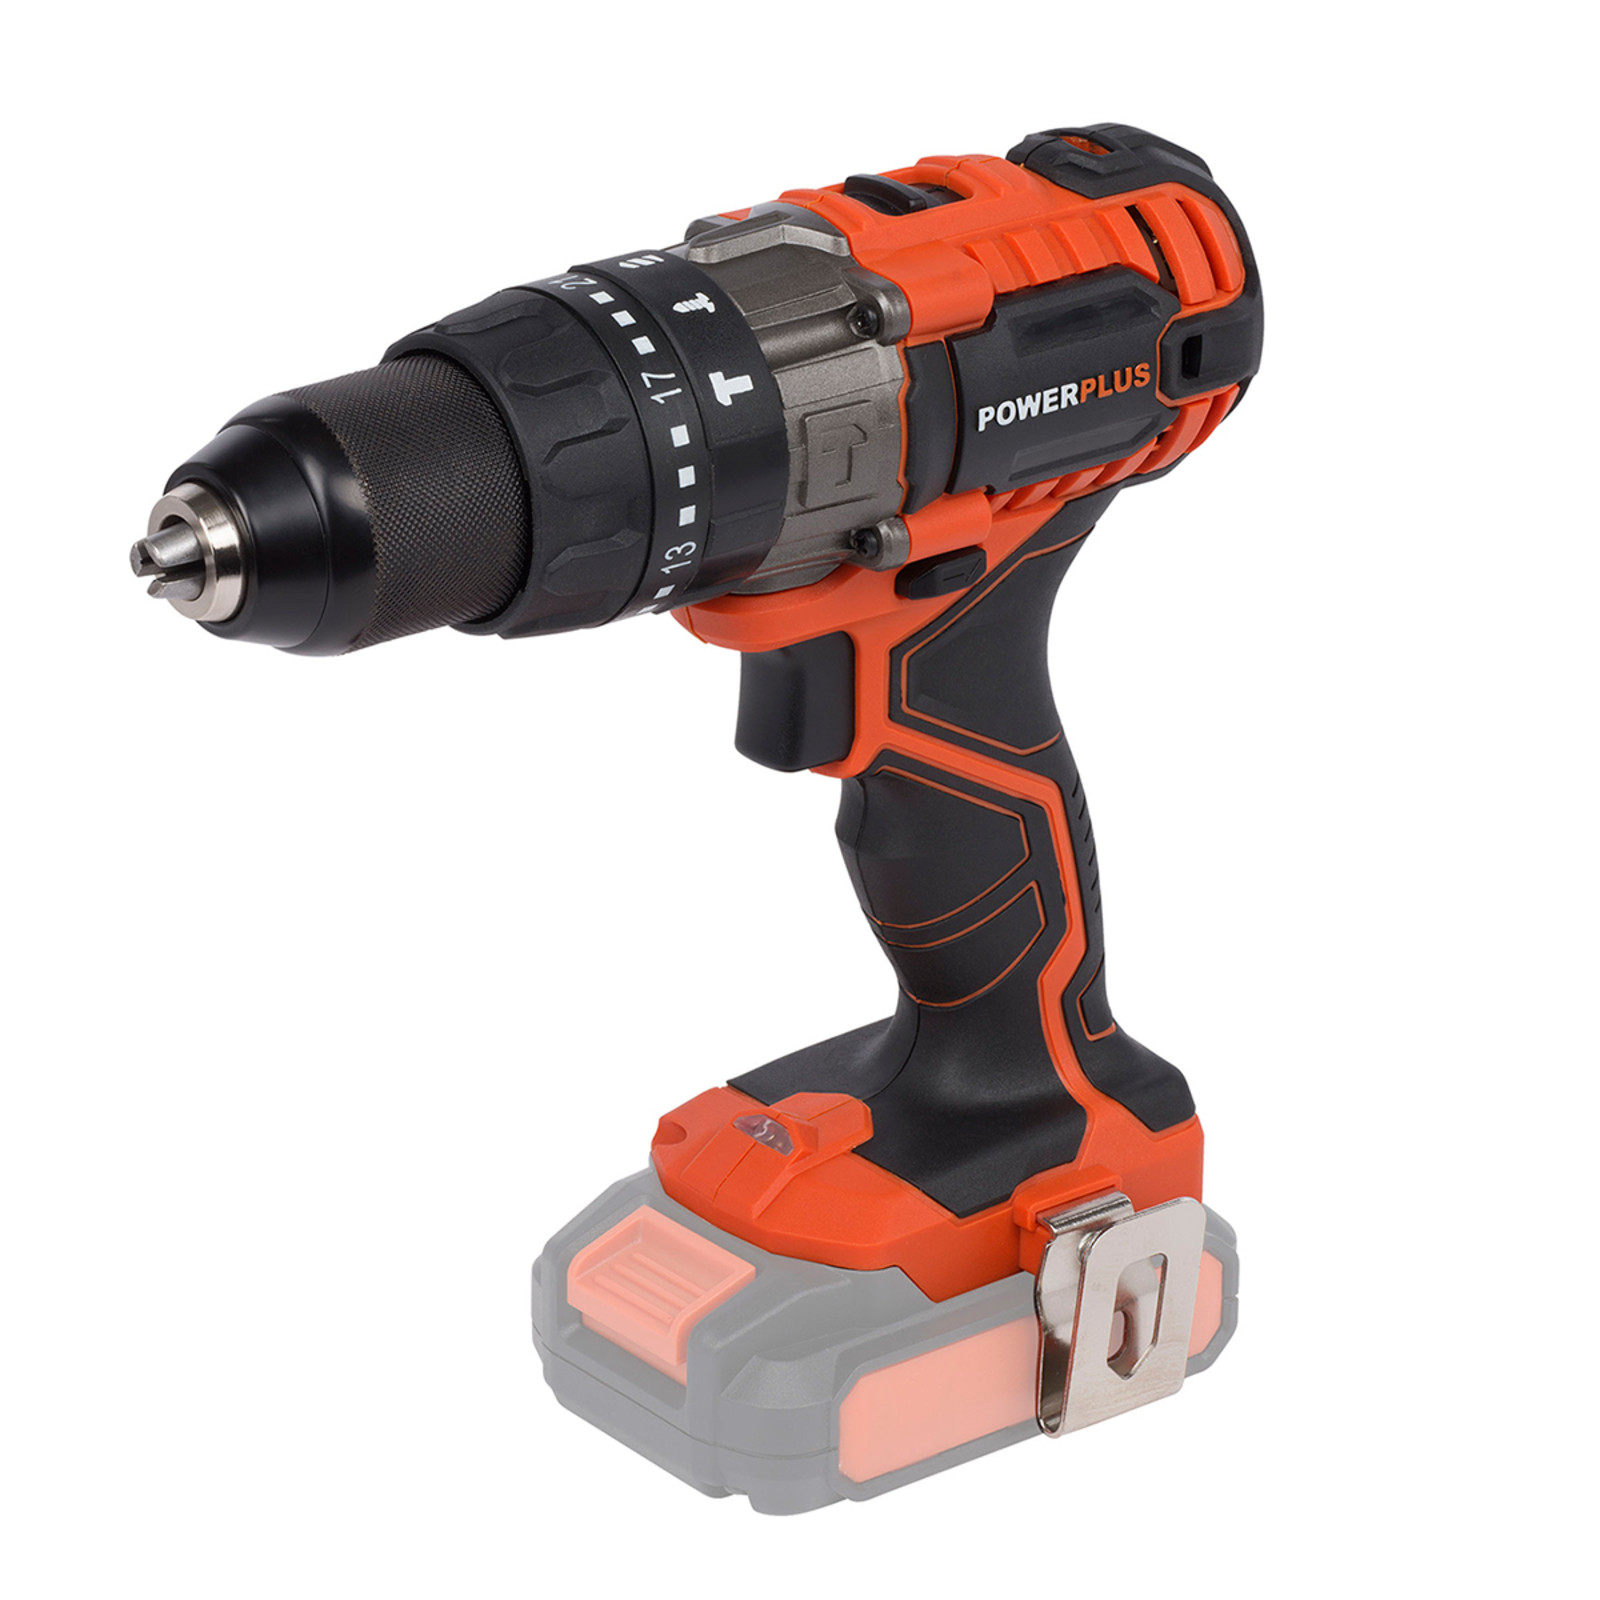 powerplus cordless 20v combi drill dual power | ukhs.tv tools-to-go